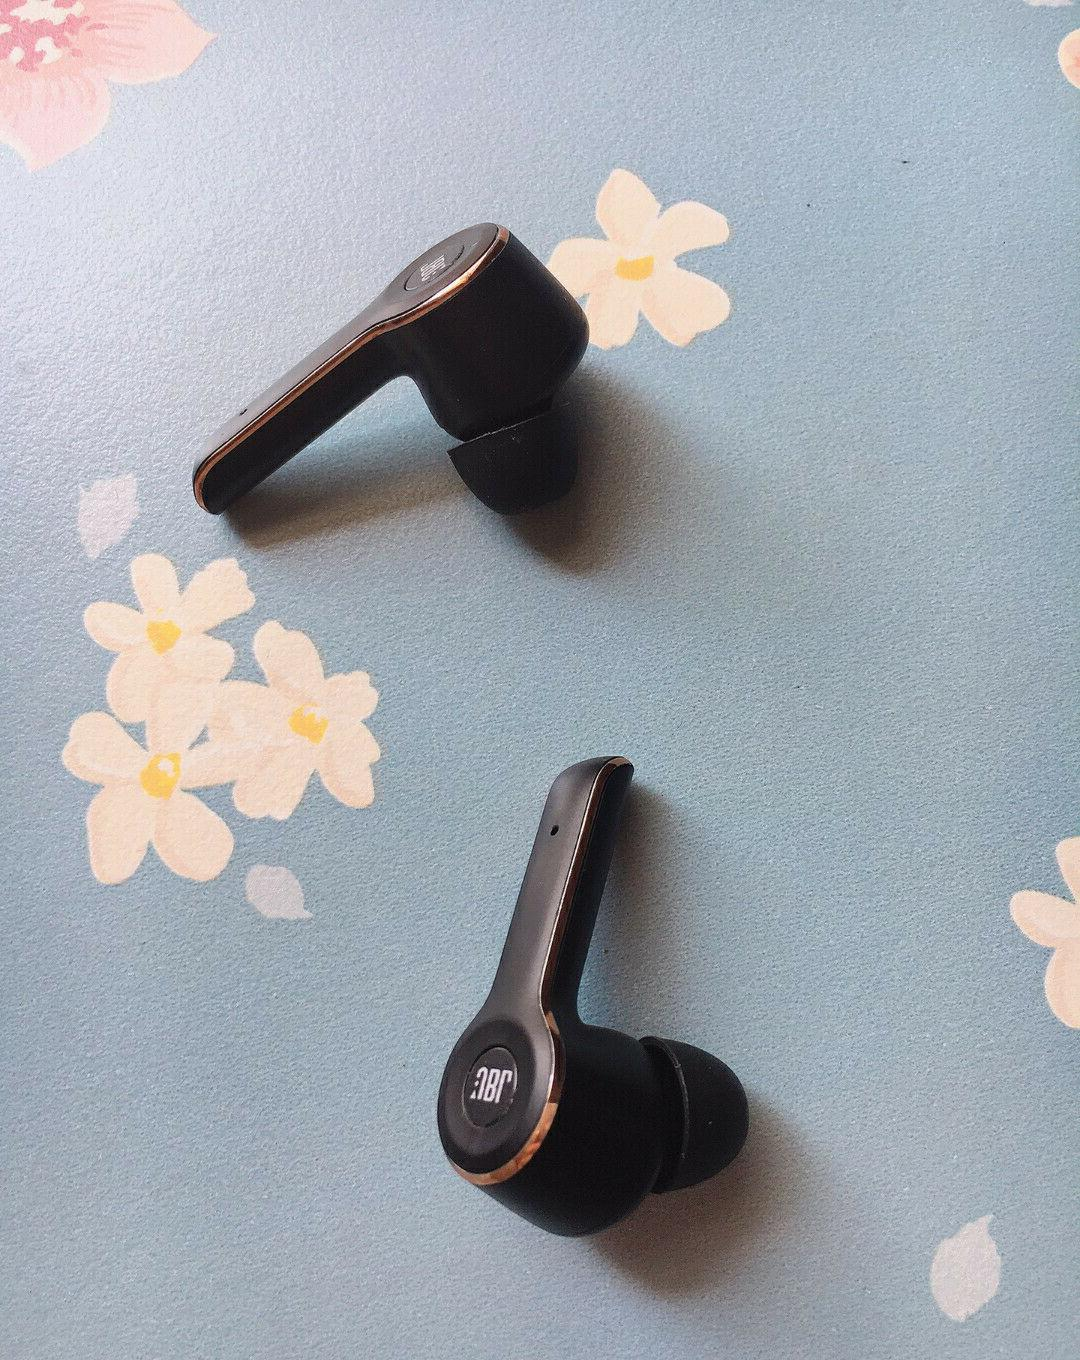 Wireless Headphone Headsets For Android Black